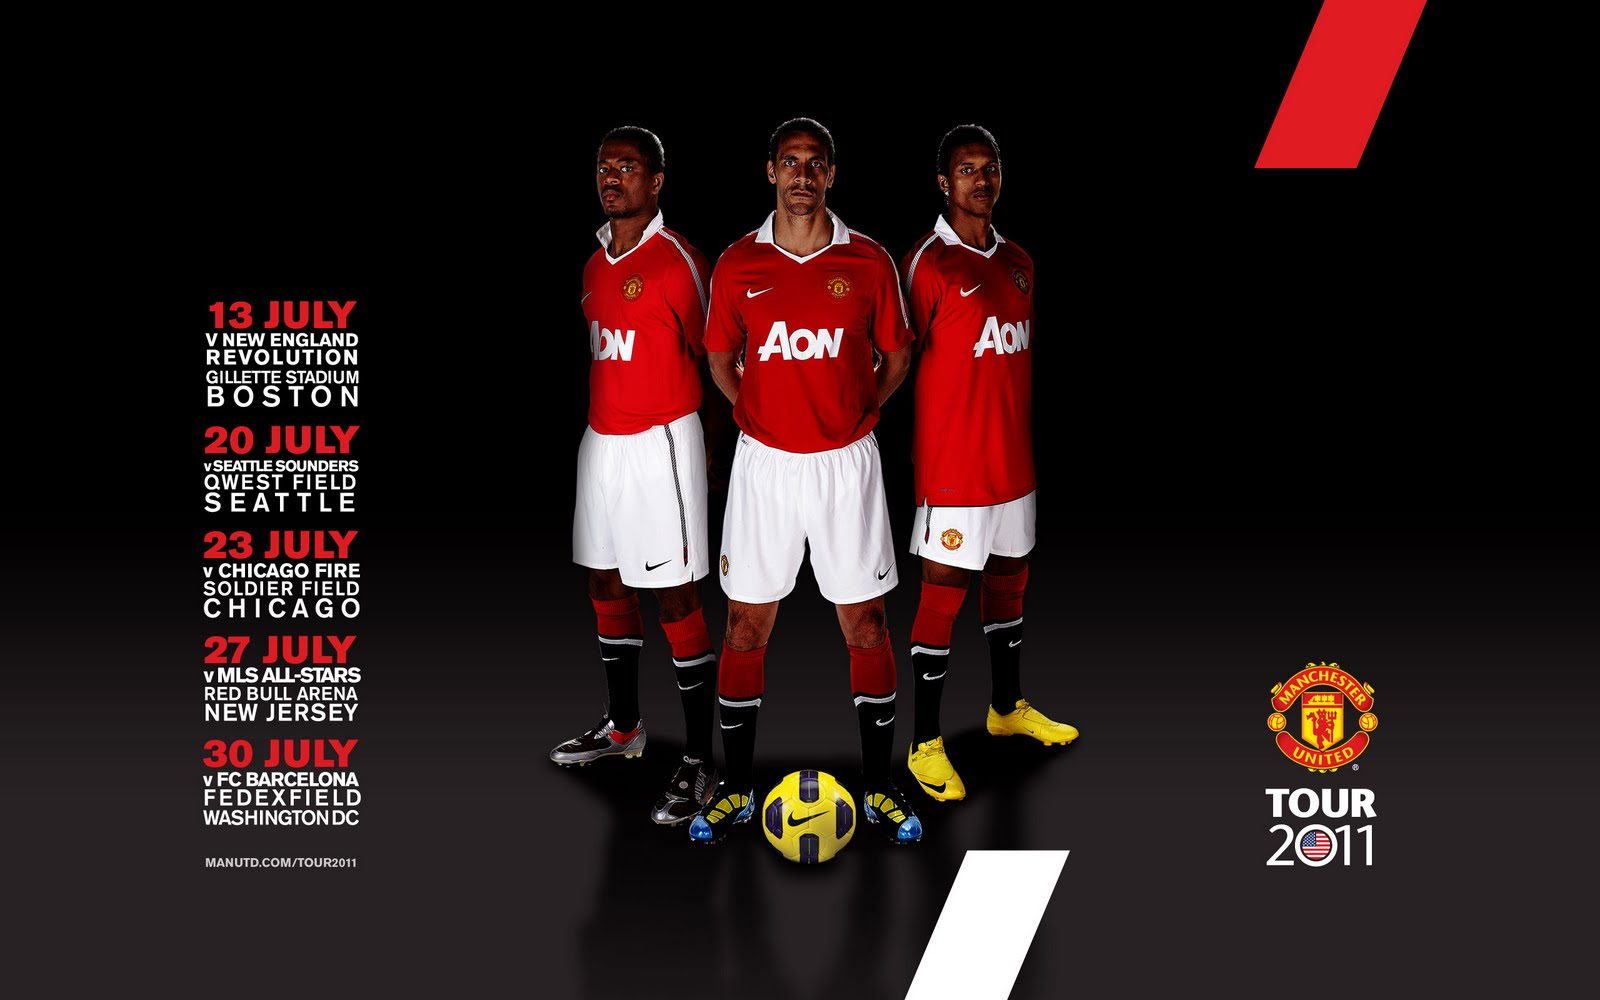 Manchester united wallpaper android phone man utd tour 2011 fixtures manchester united wallpaper android phone voltagebd Images